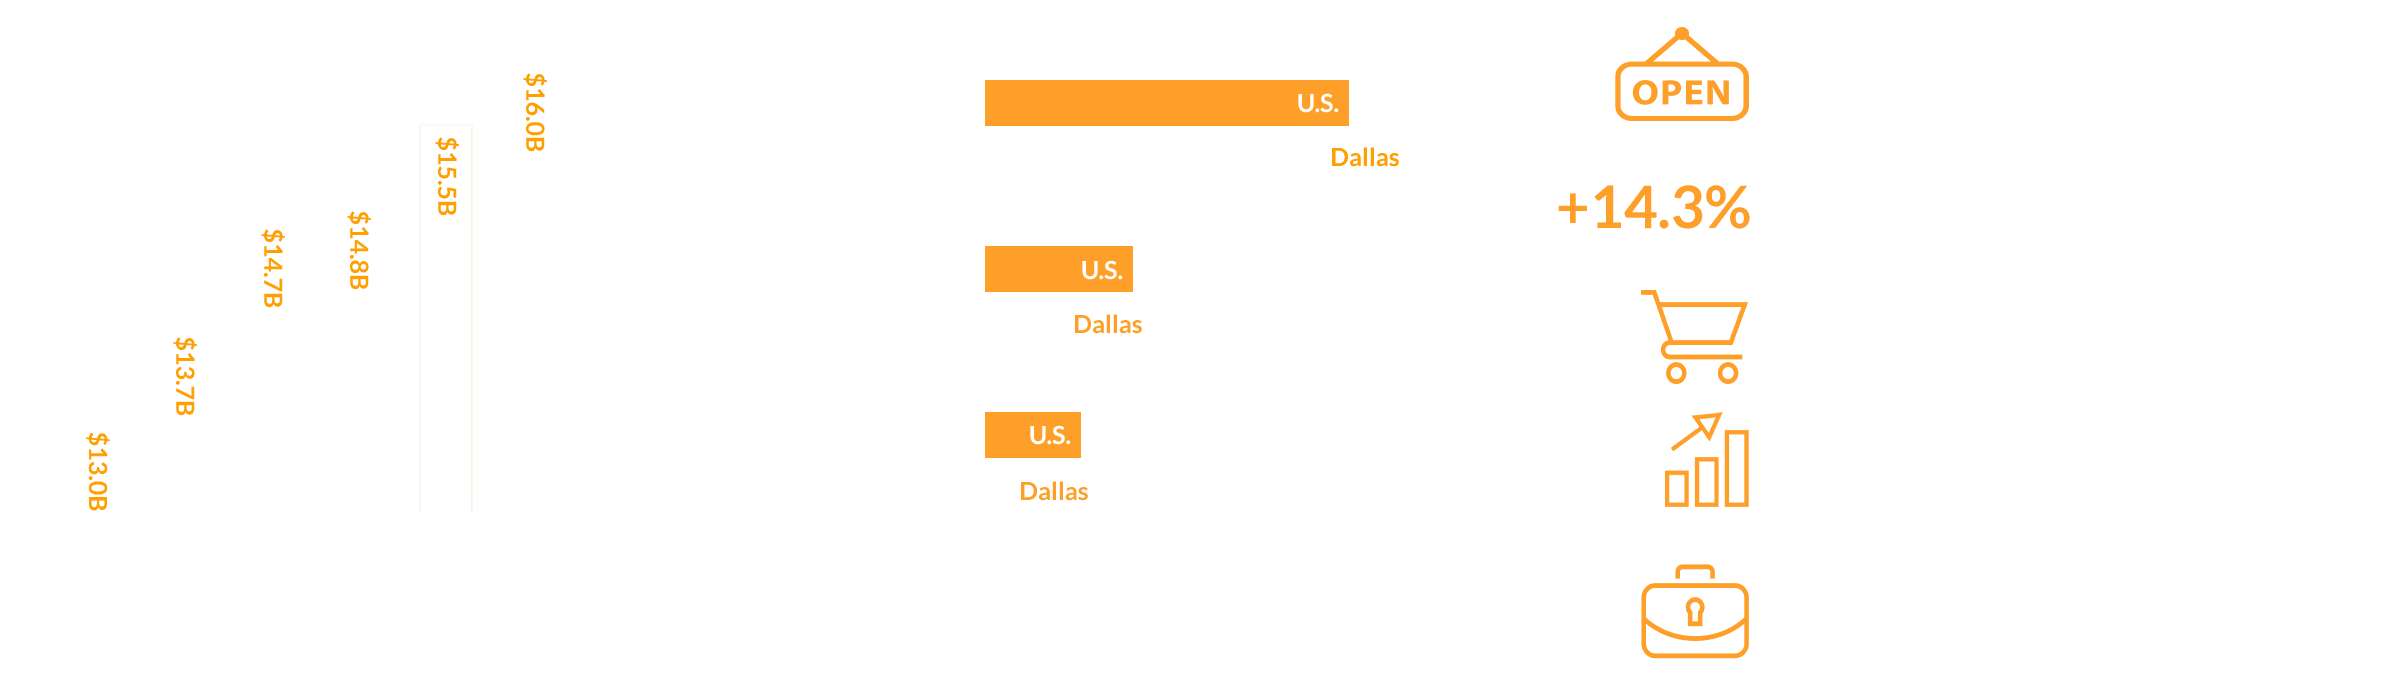 Dallas Consumers Have BIG Spending Power